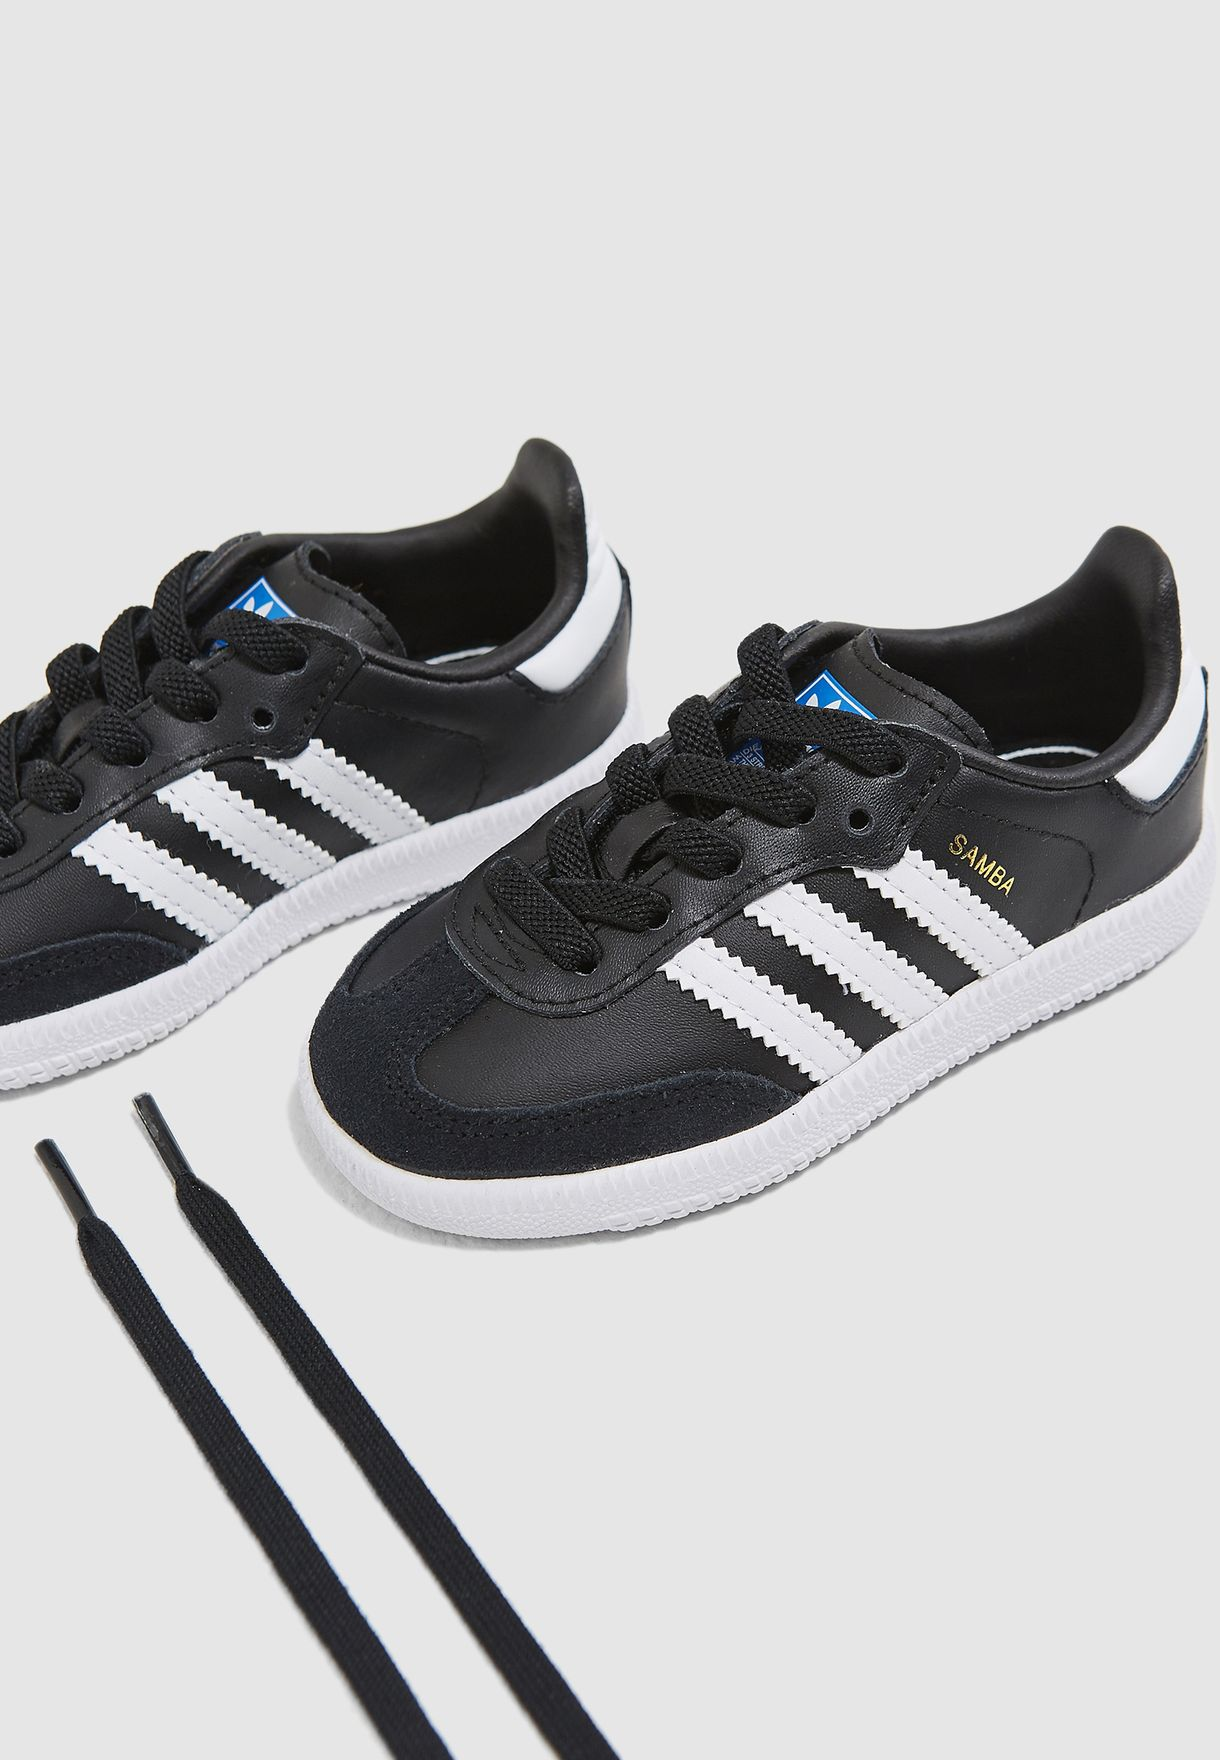 c4f8ed0e356 Shop adidas Originals black Infant Samba OG EL B42129 for Kids in ...